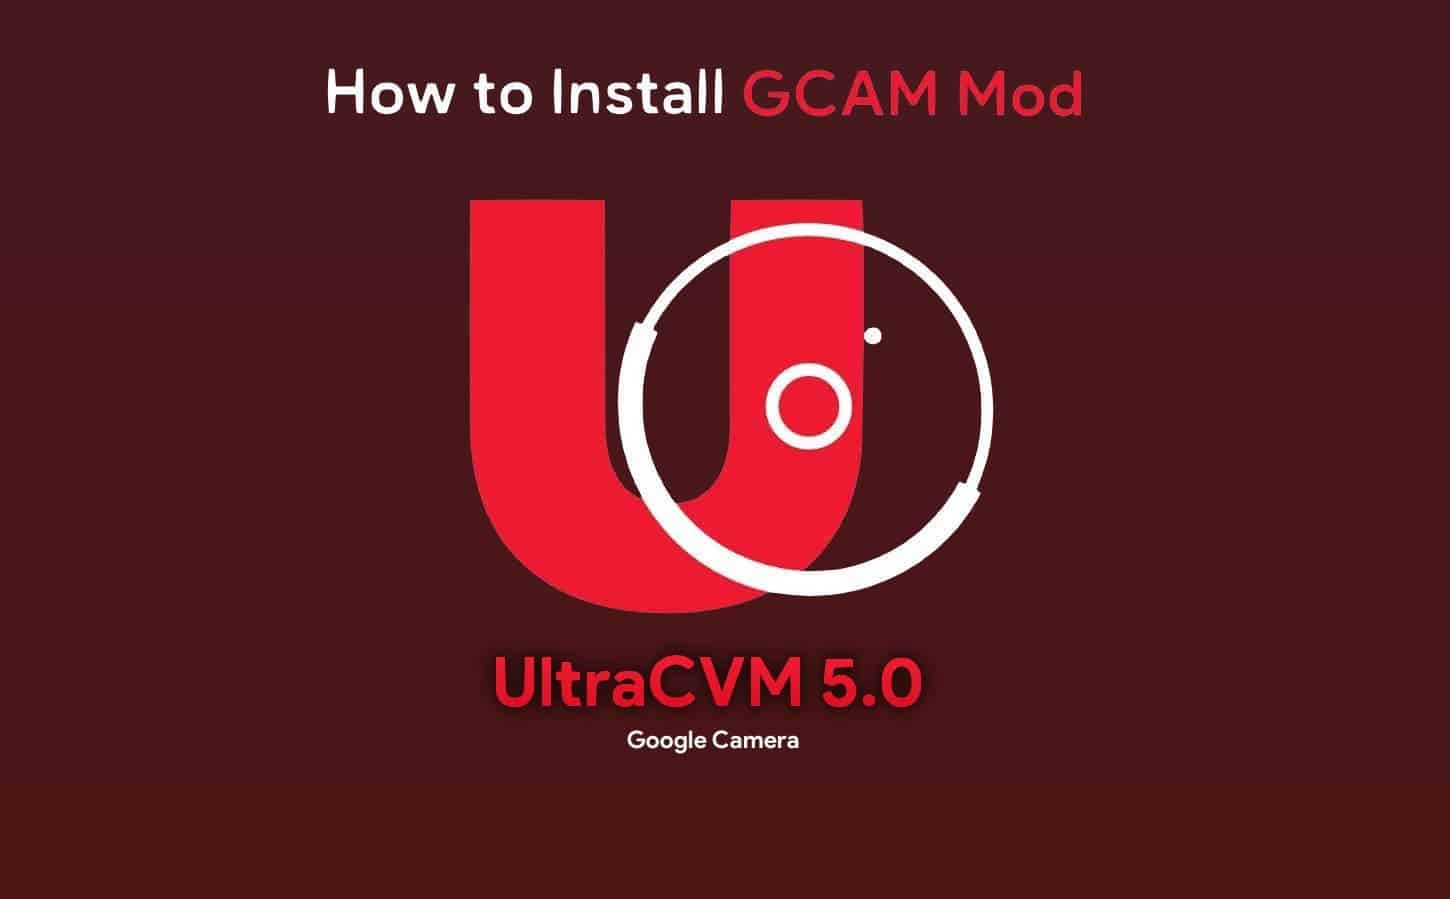 How to install Gcam (UltraCVM 5.0 mod) in all Android smartphones - RapidAPI